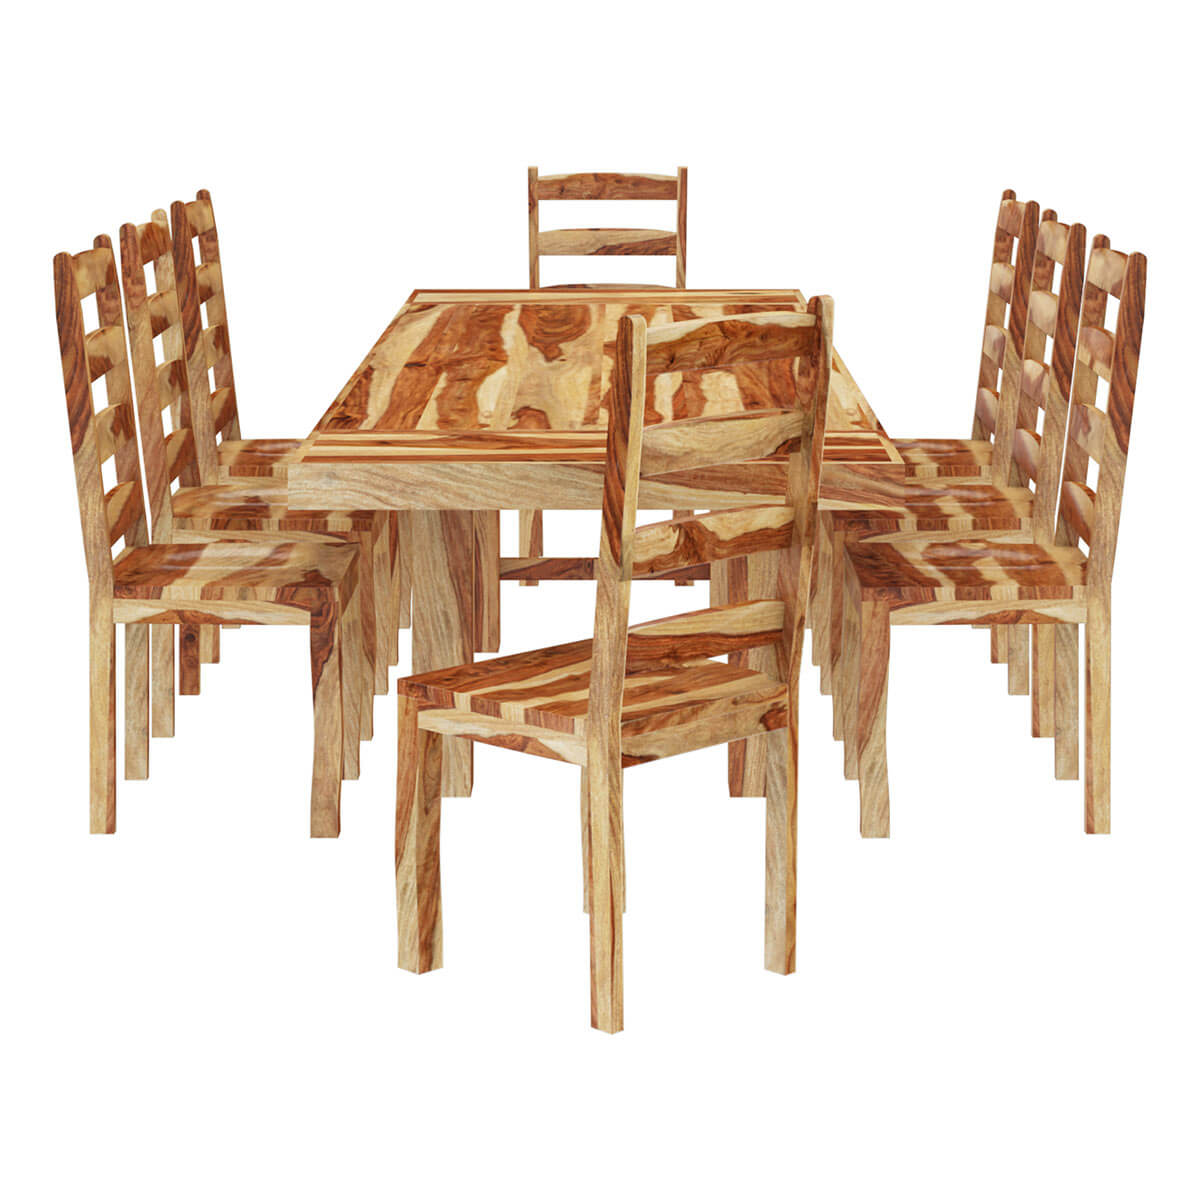 Rosewood Dining Room Set: Bluffton Classic Handcrafted Solid Rosewood 10 Piece